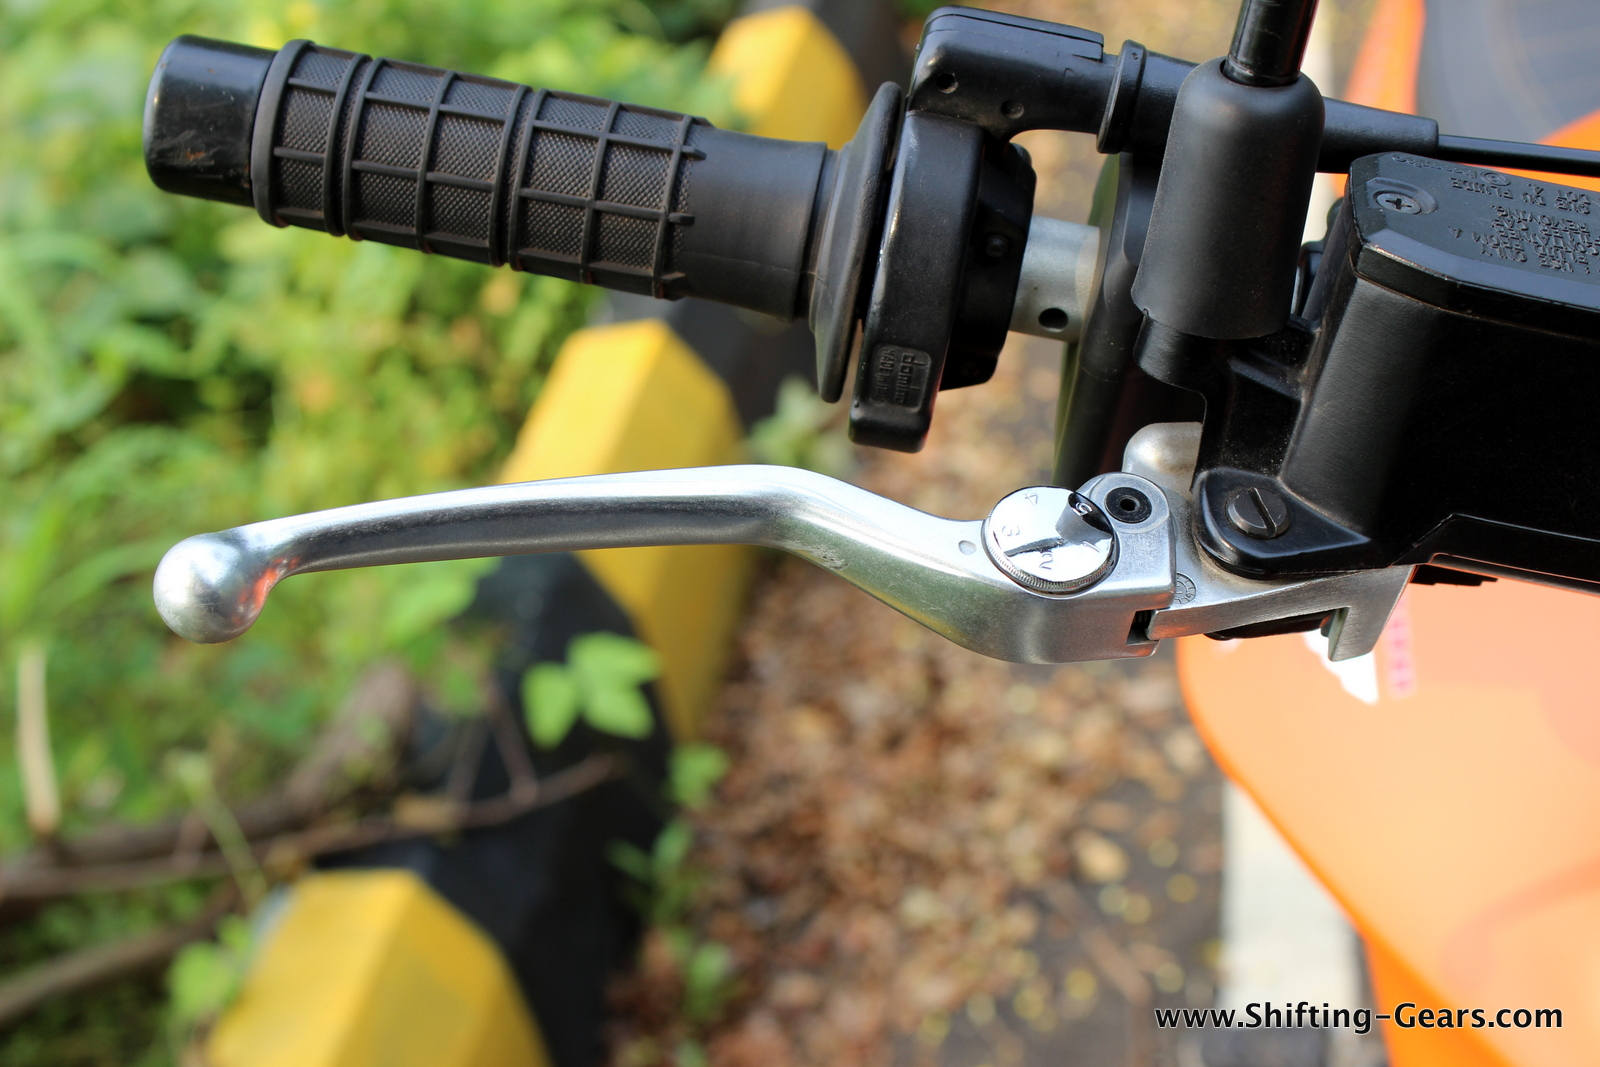 Adjustable, forged front brake and clutch levers